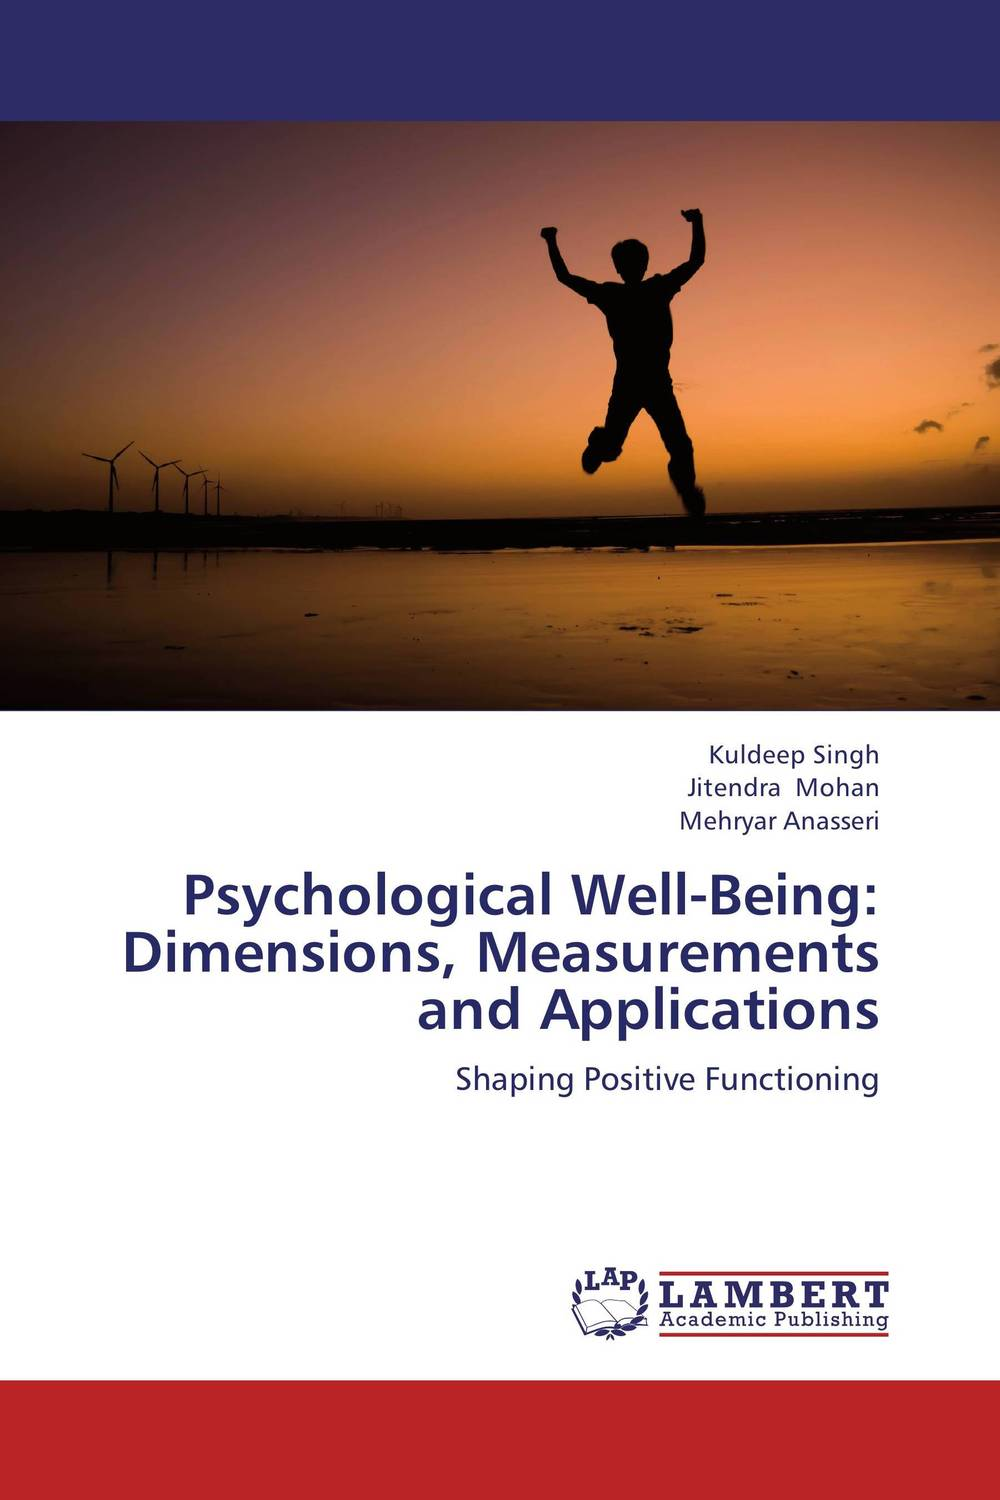 Psychological Well-Being: Dimensions, Measurements and Applications epilepsy in children psychological concerns